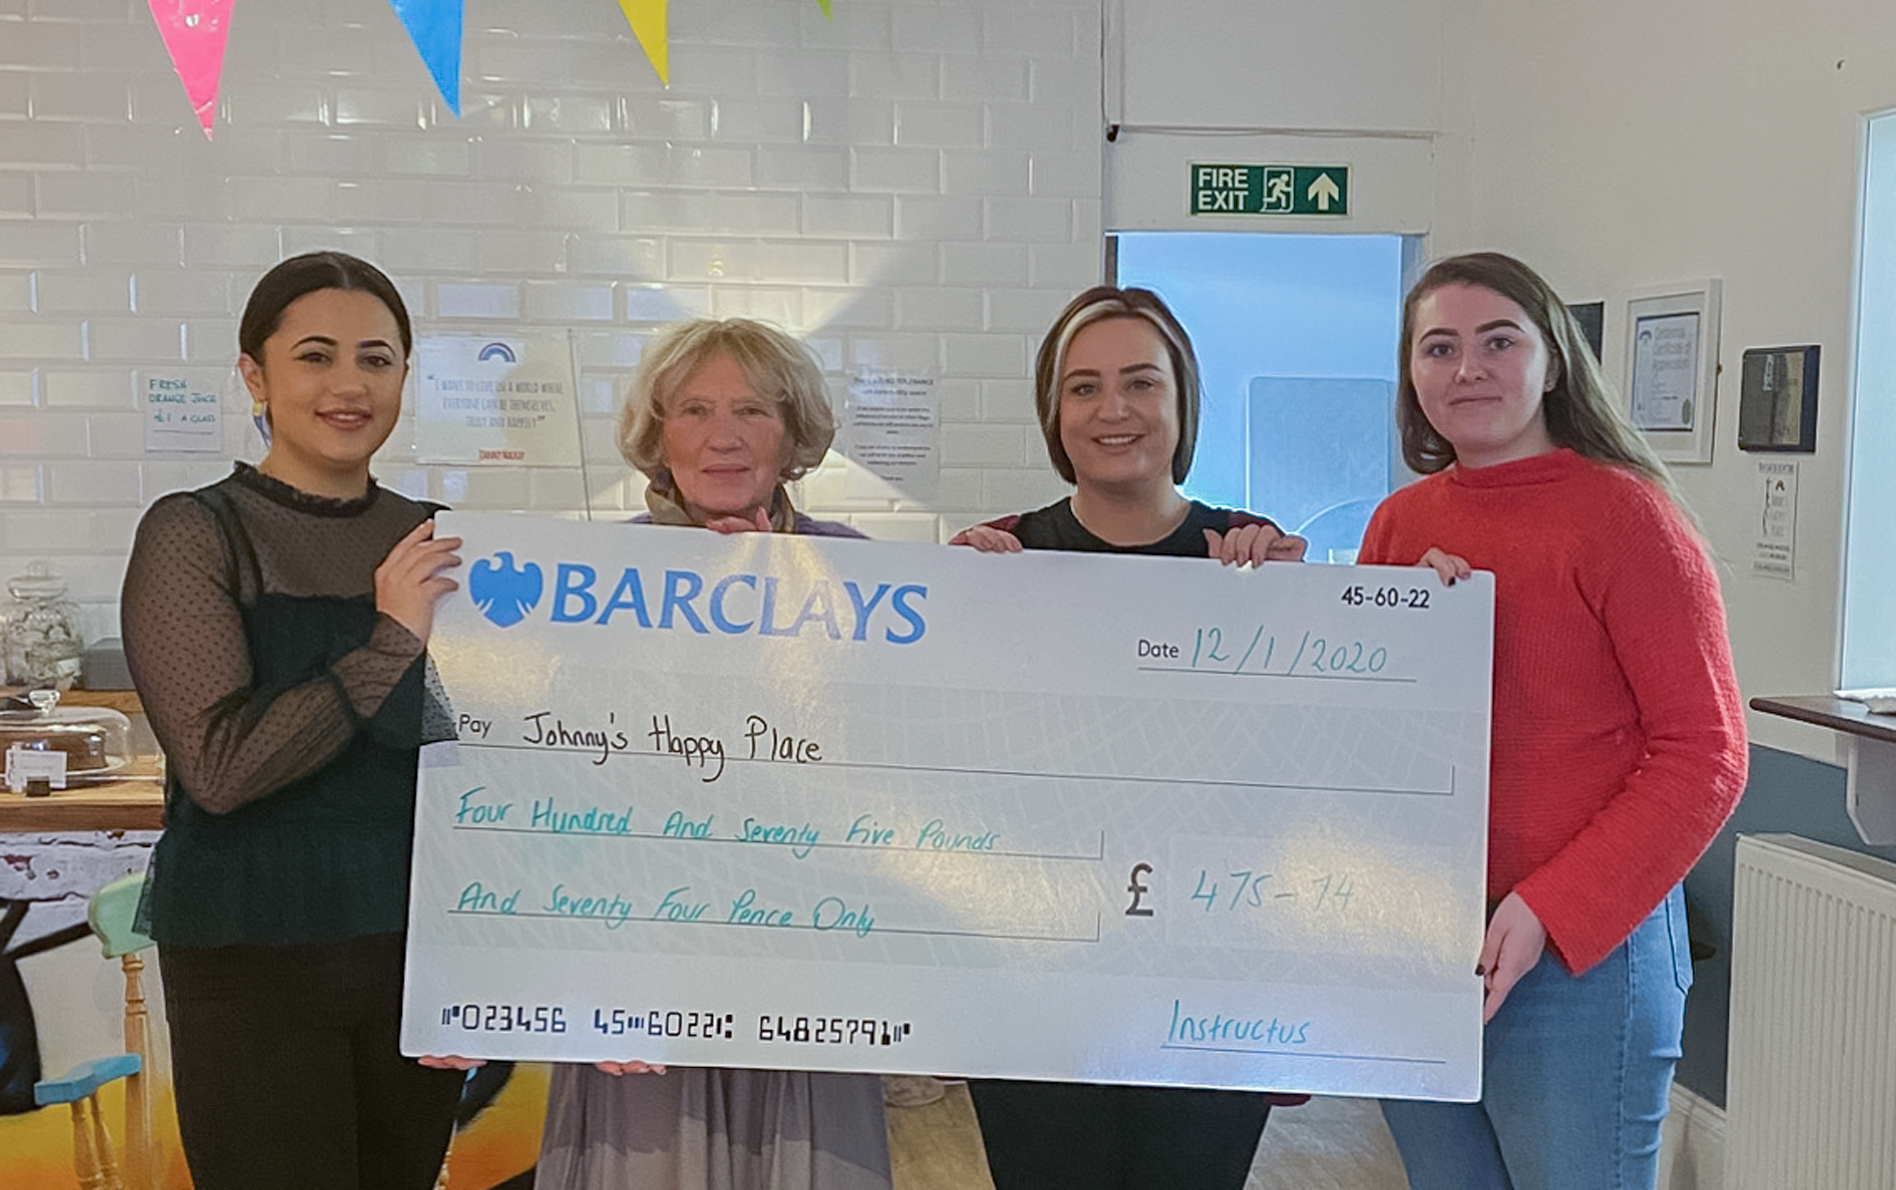 Fundraising for Johnny's Happy Place in Kettering | Instructus